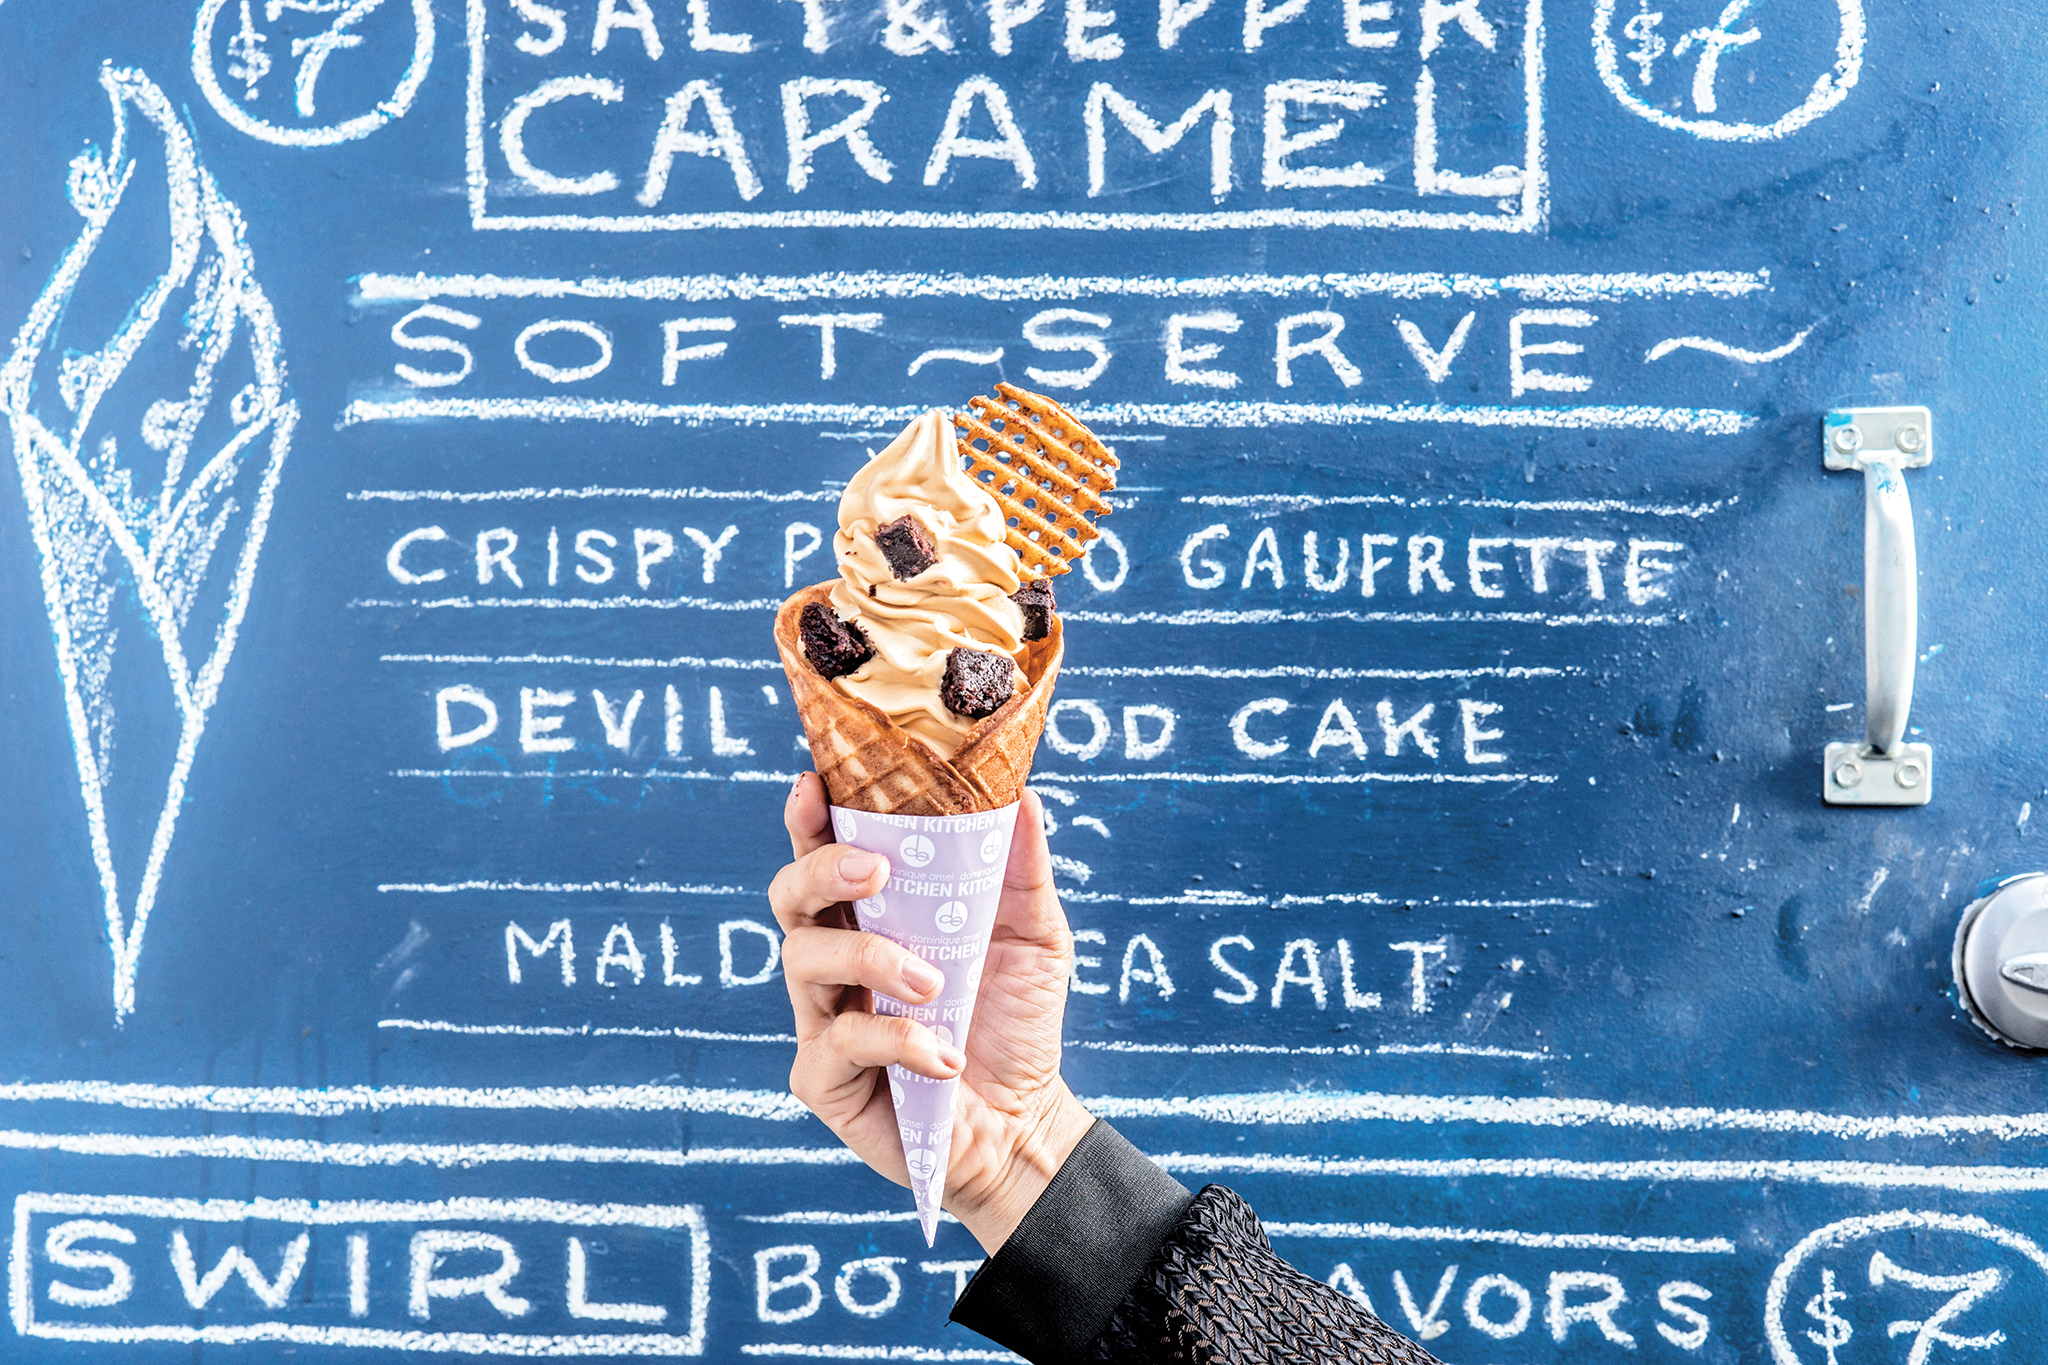 The best soft serve ice cream in NYC